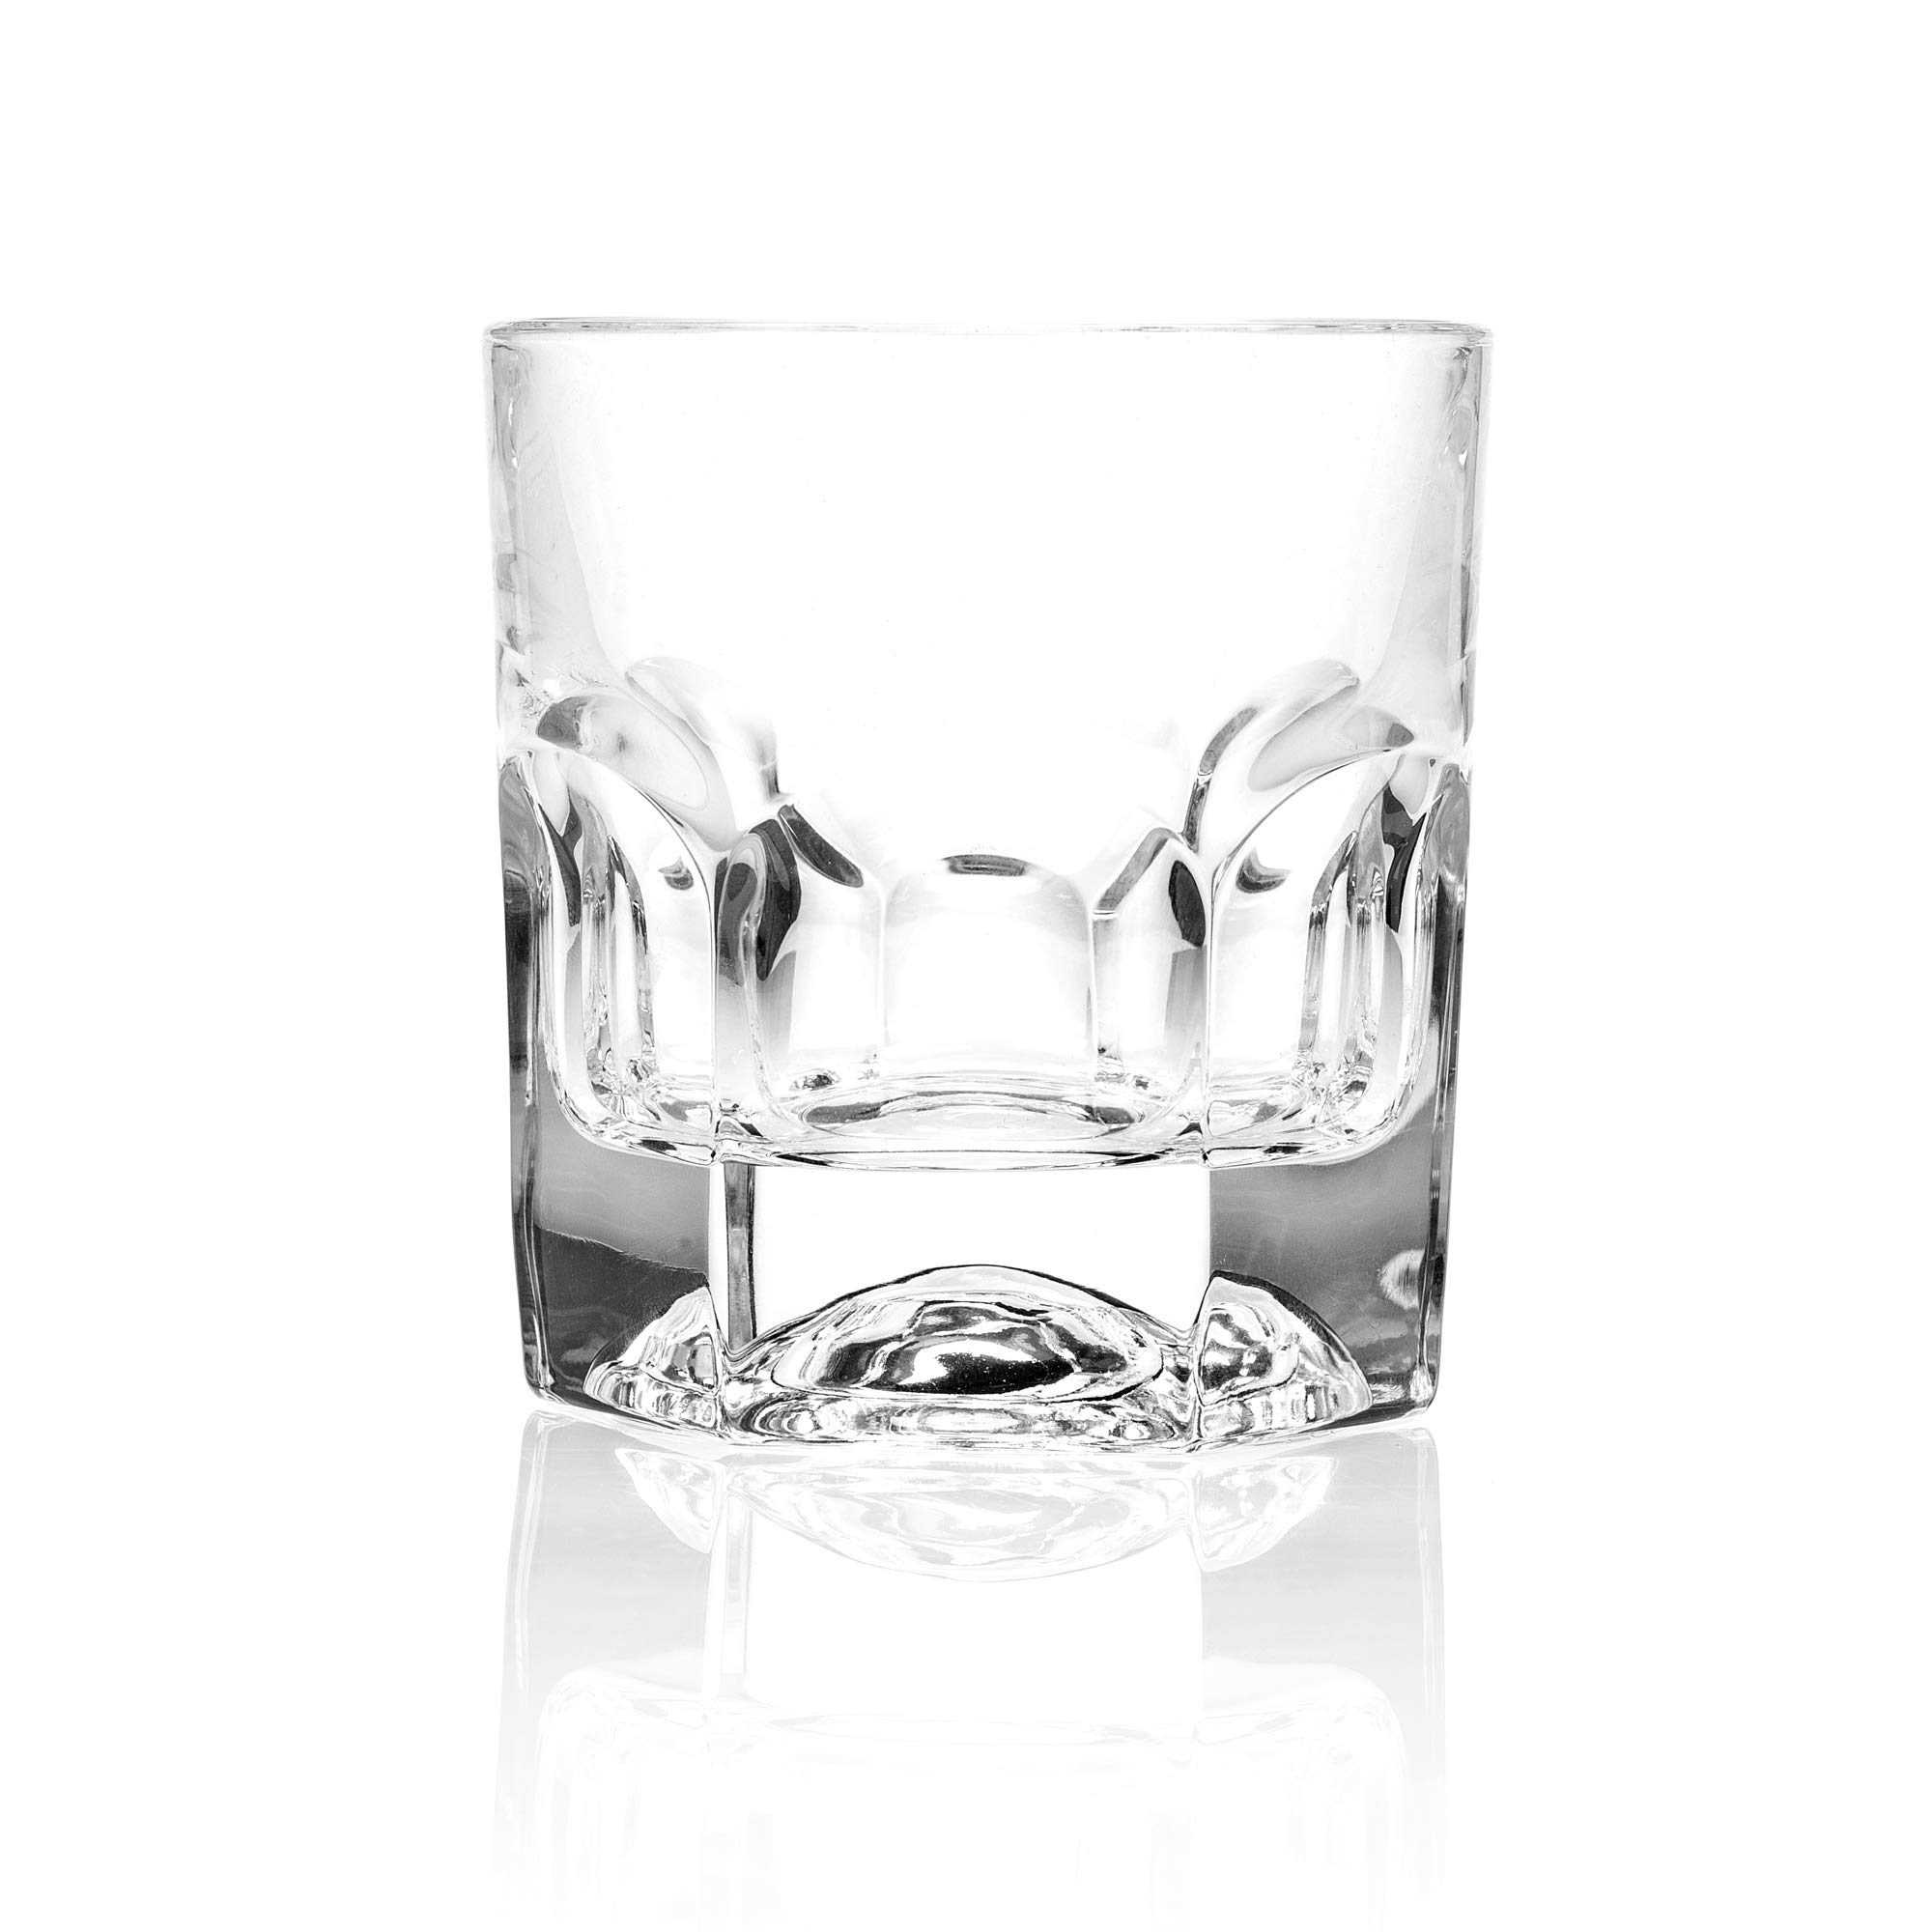 RCR Provenza Crystal Short Whisky Water Tumblers Glasses, 6.5oz, Set of 6